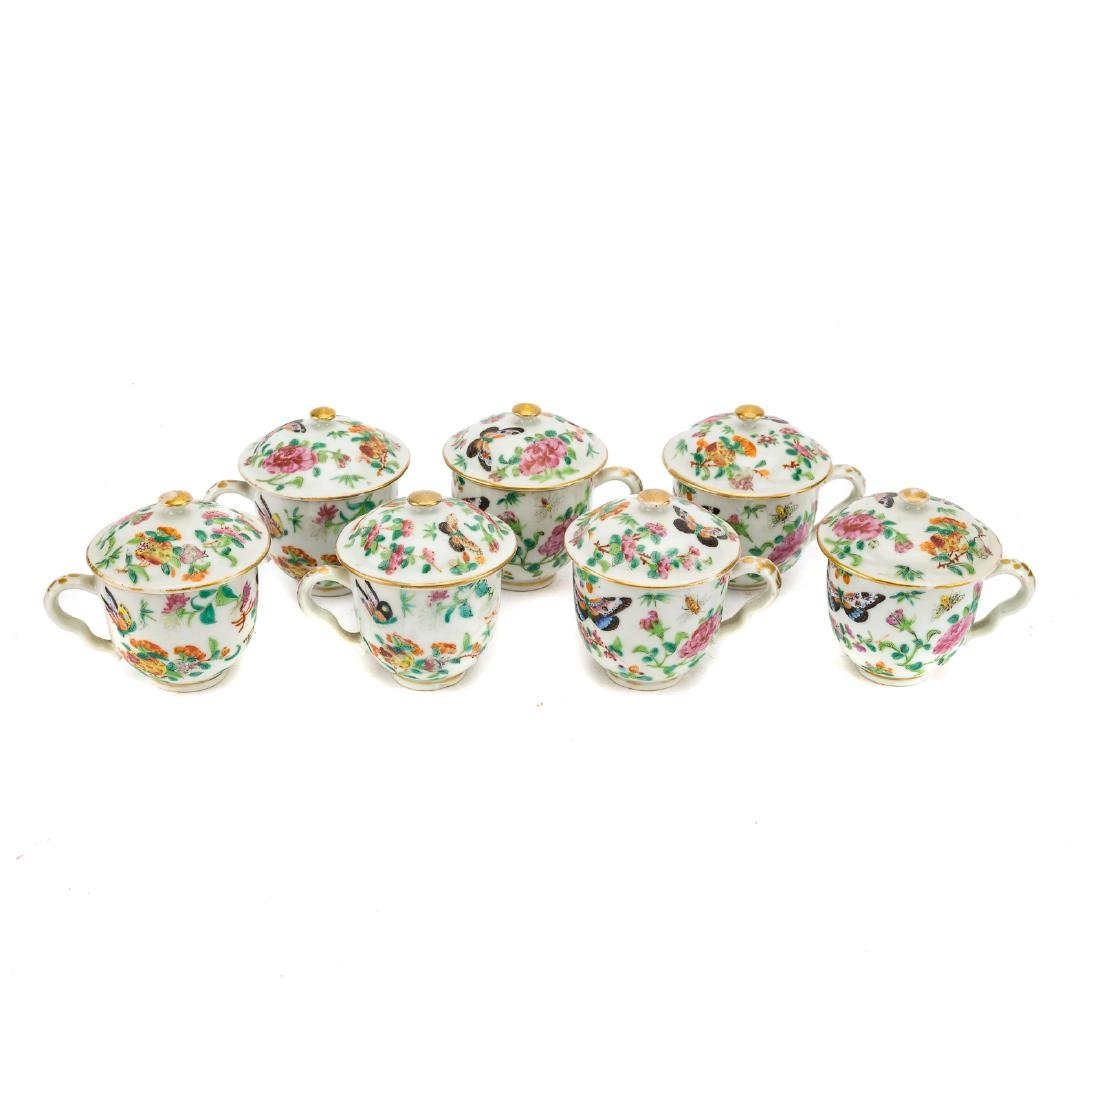 13-piece Chinese Export Famille Rose tea set - 4